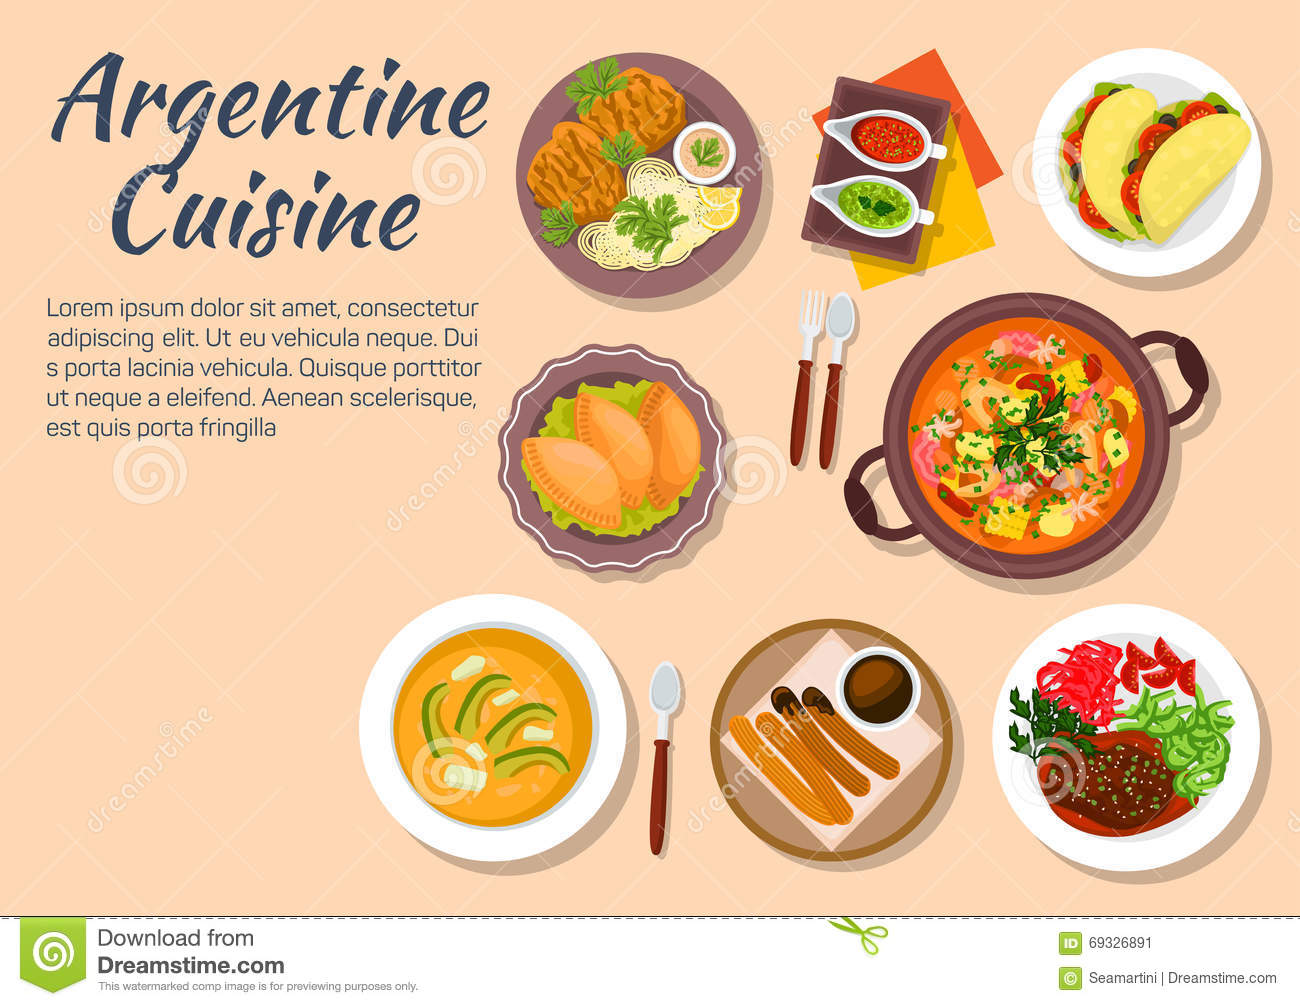 Plats authentiques de cuisine de l 39 argentine illustration for Artistic argentinean cuisine